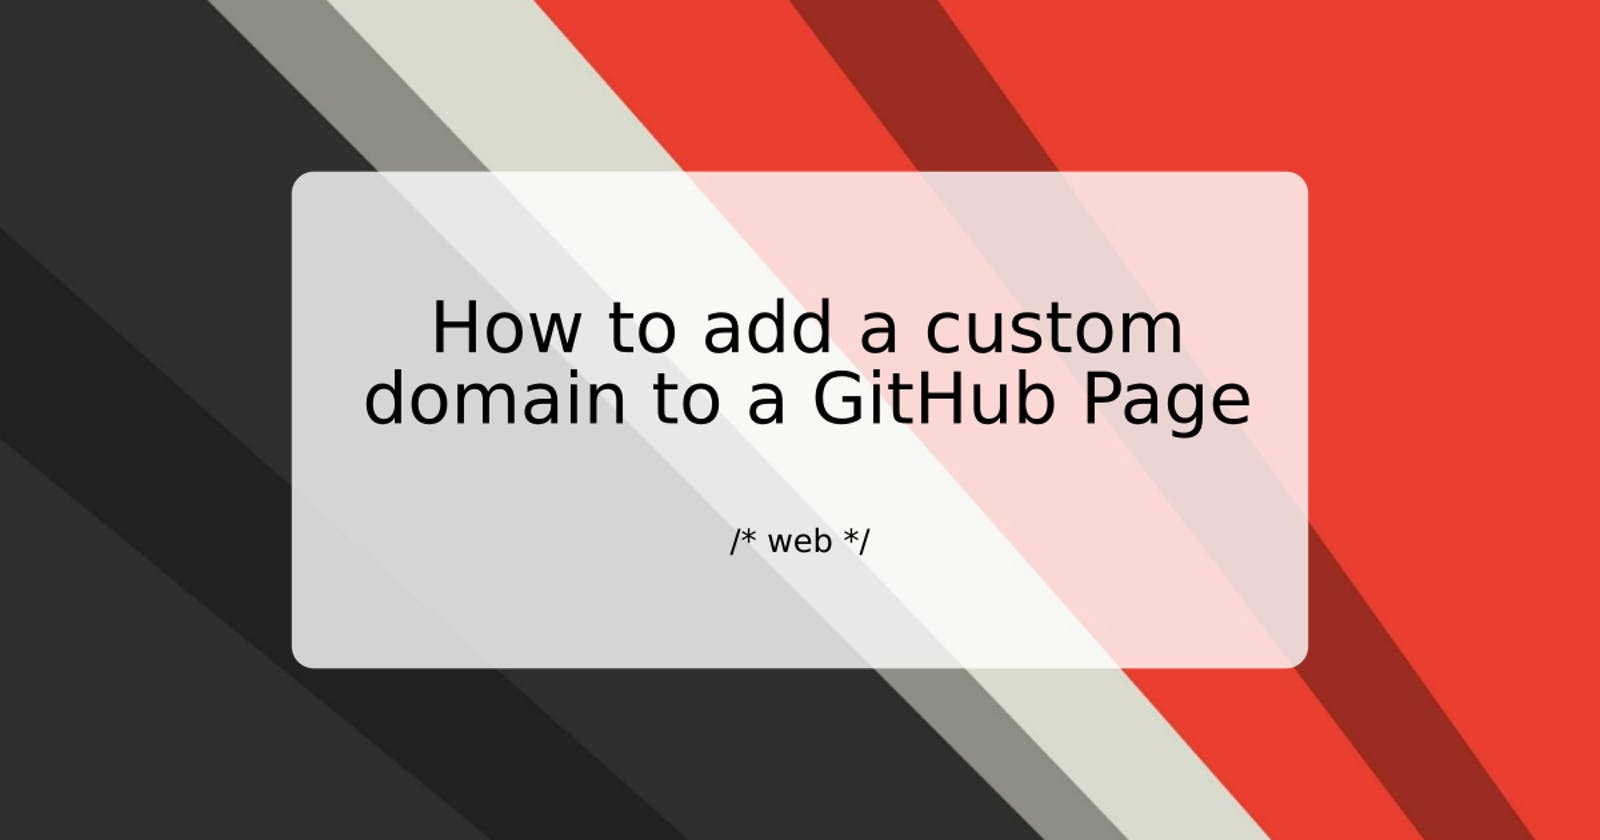 How to add a custom domain to a GitHub Page